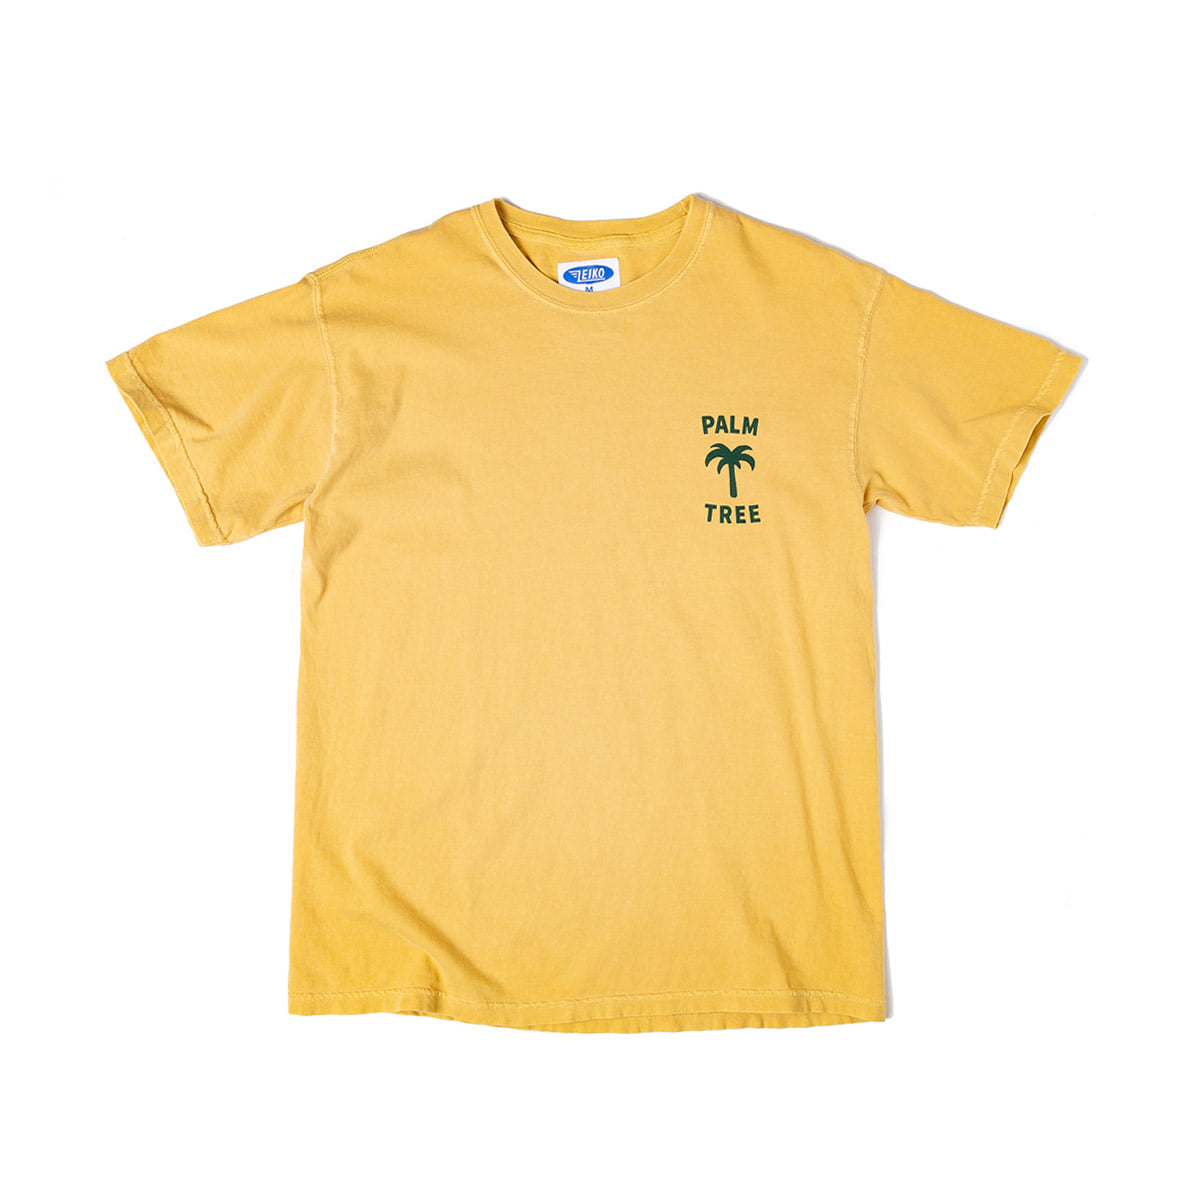 [BIG WAVE] PALM TREE T 'SAND YELLOW'